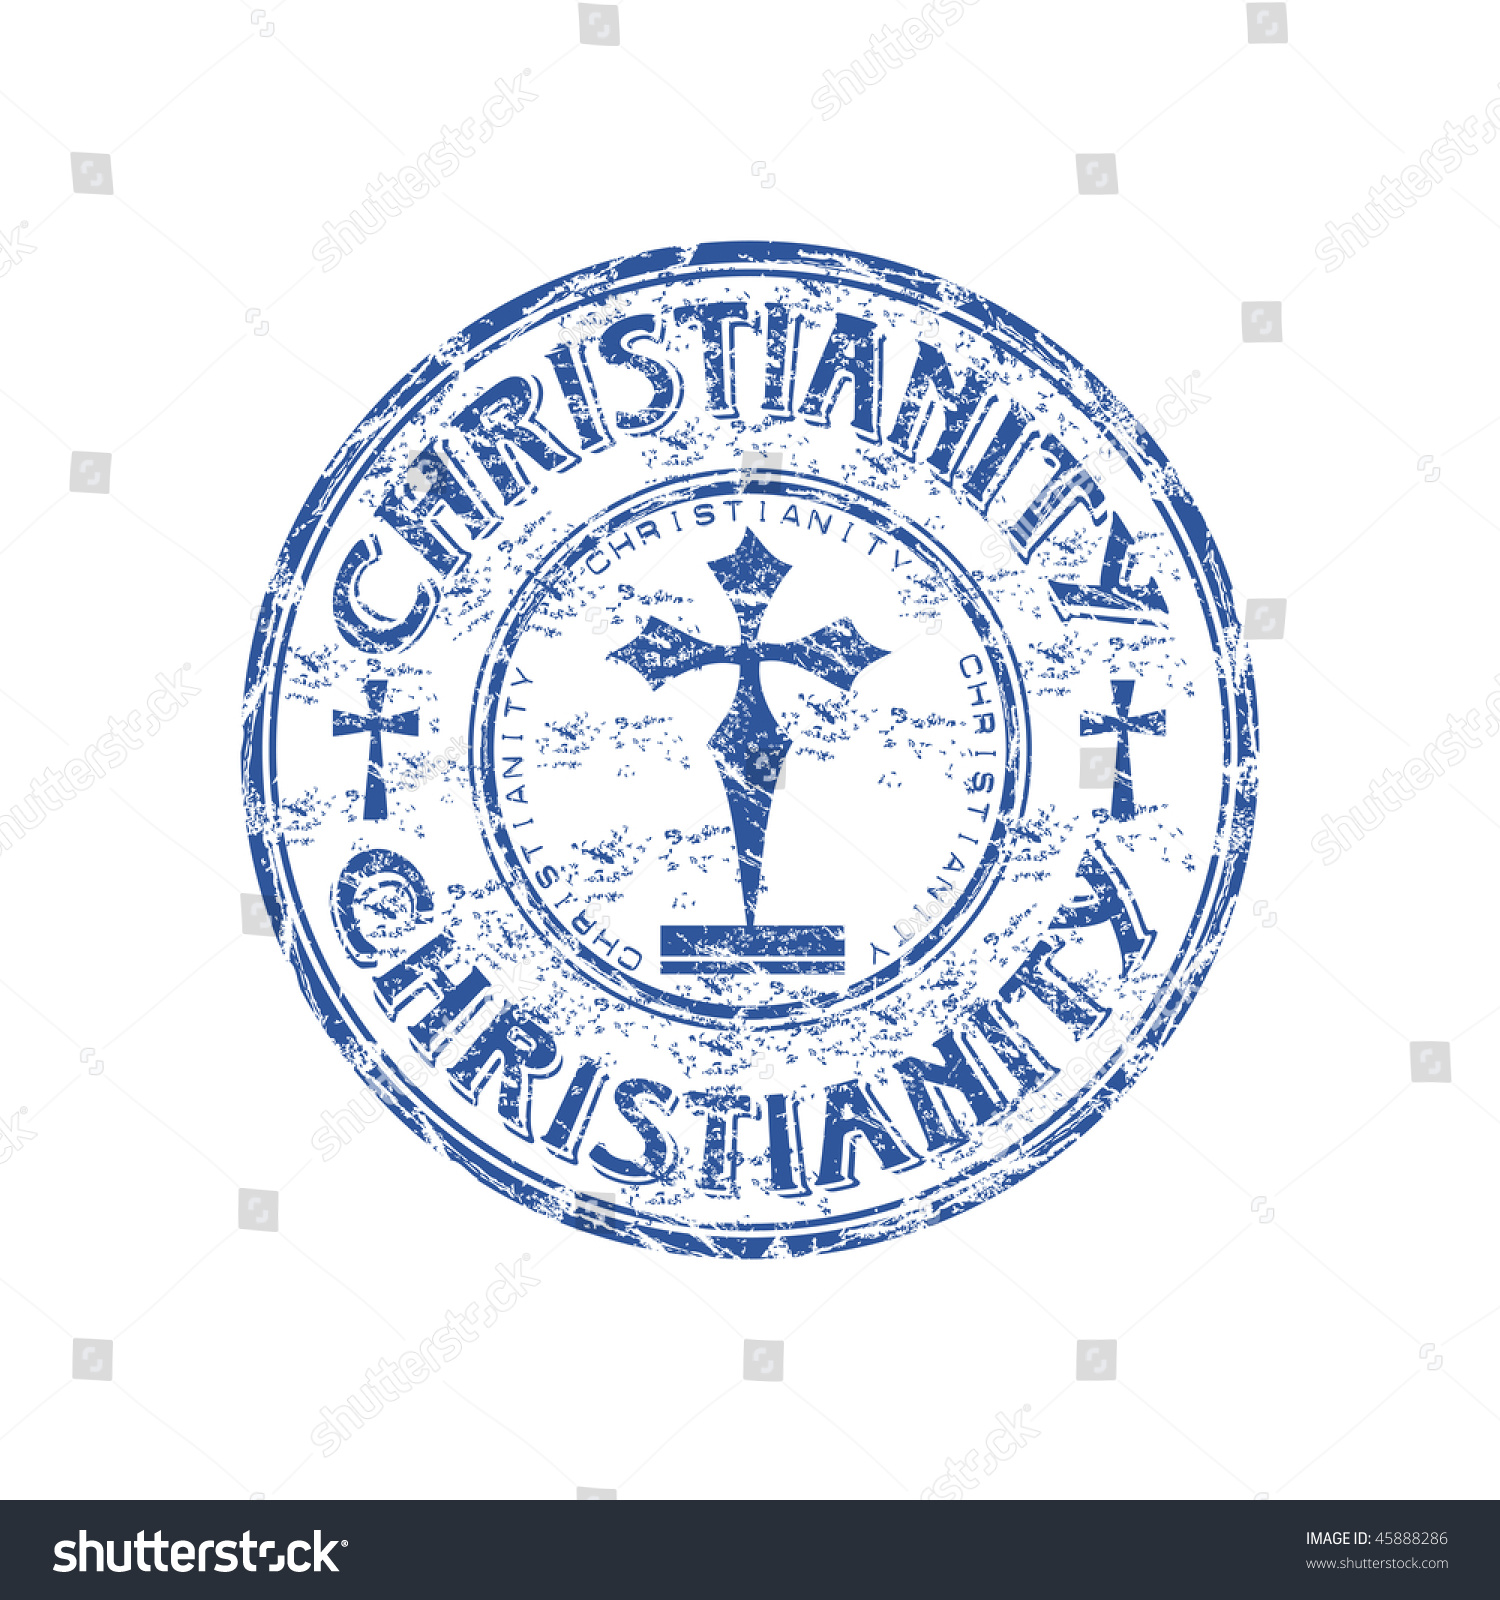 Blue grunge rubber stamp cross symbols stock vector 45888286 blue grunge rubber stamp with cross symbols and the word christianity written inside the stamp buycottarizona Choice Image